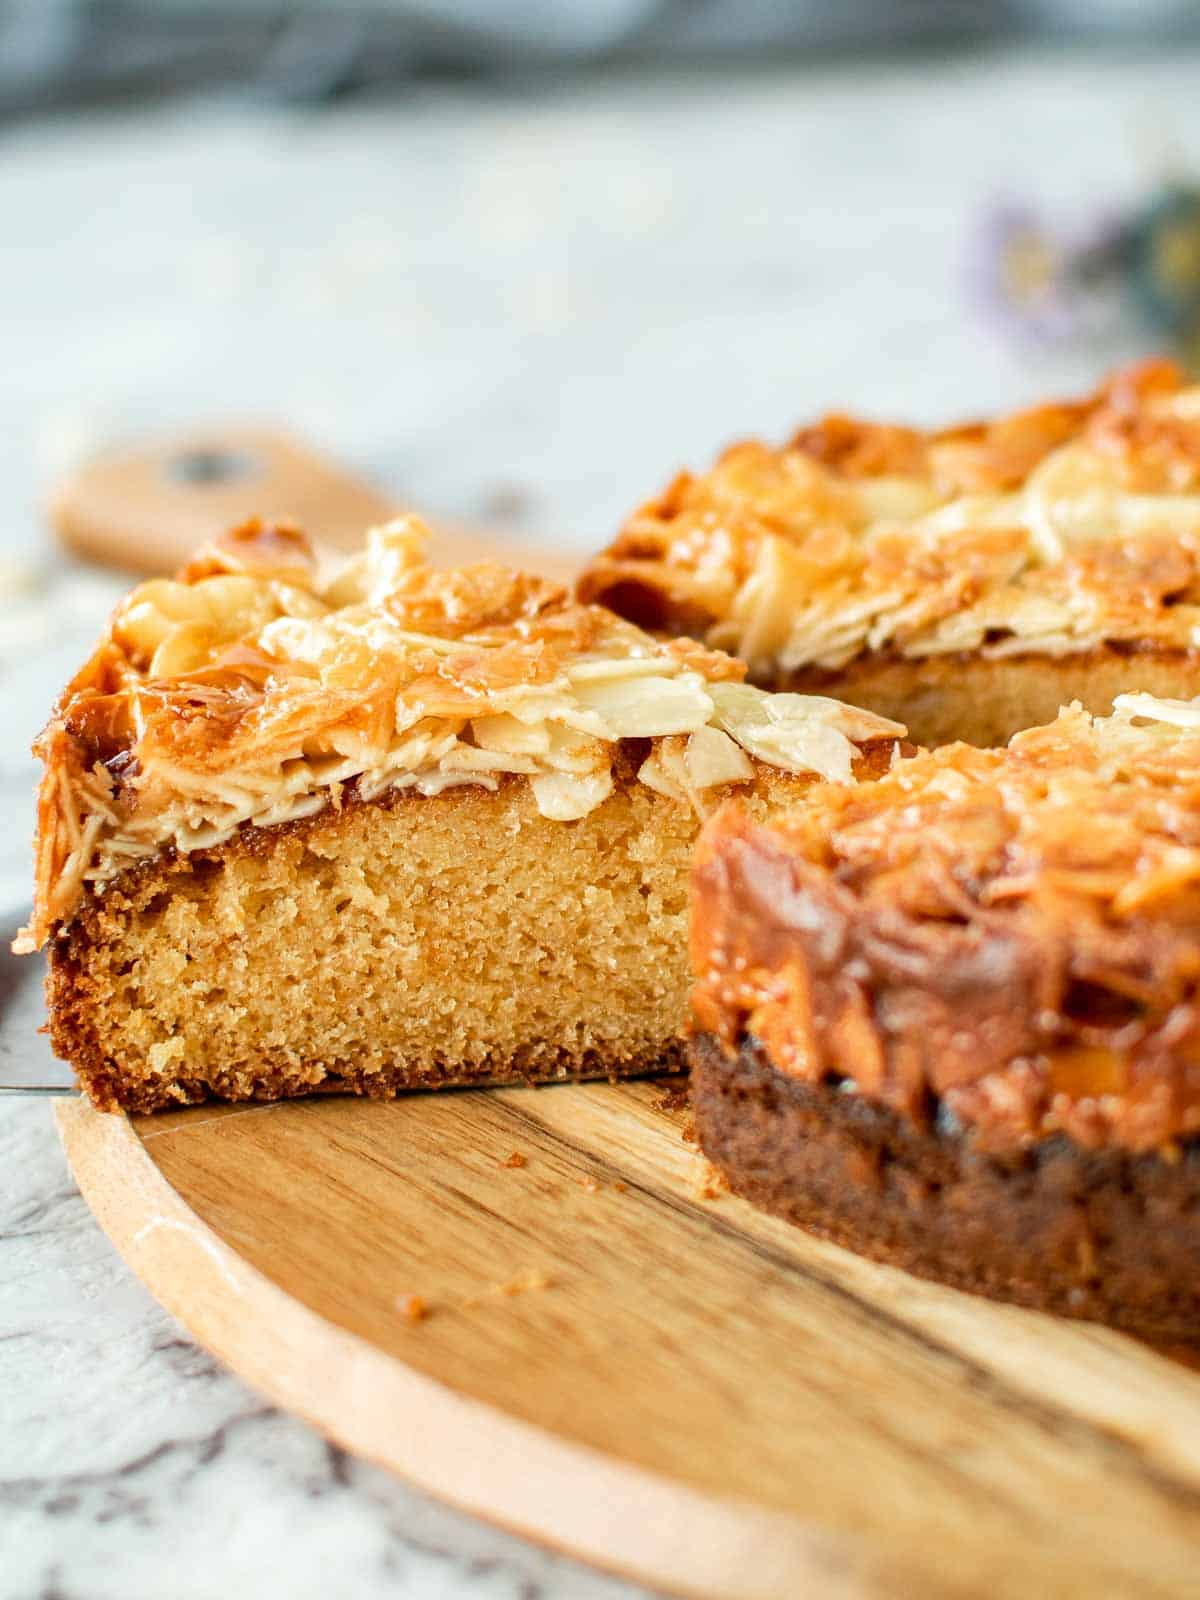 slice of cake with almond topping cut from whole cake viewed side on.